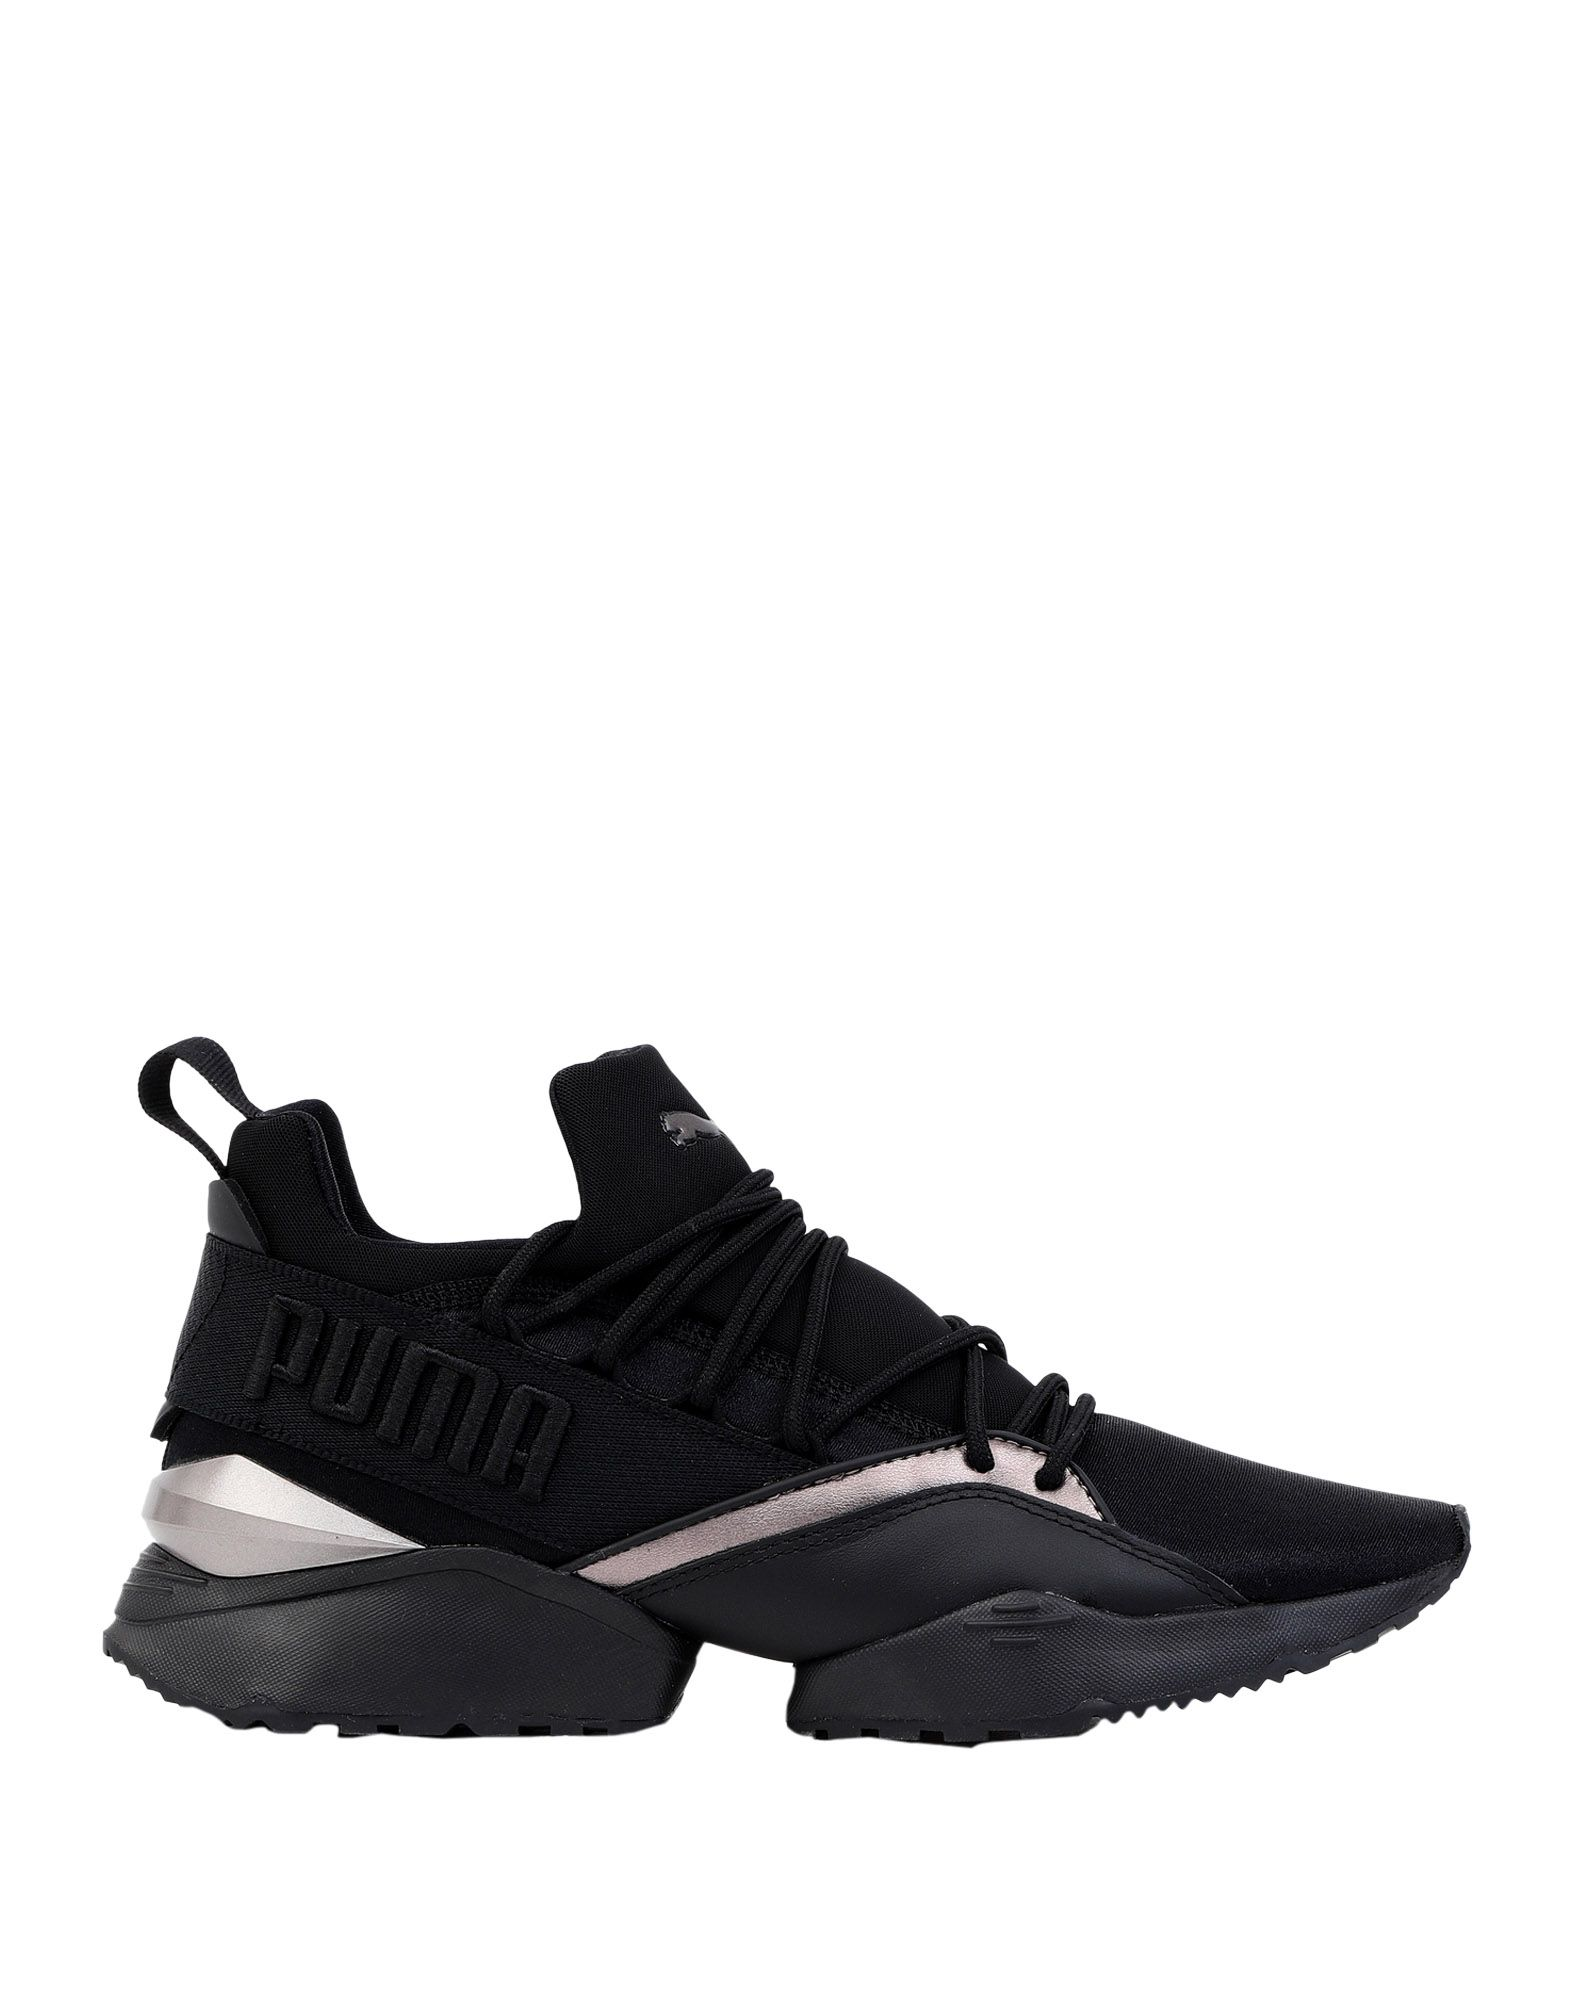 c1870a19f0fdf9 Puma Muse Maia Luxe Wn s - Sneakers - Women Puma Sneakers online on ...